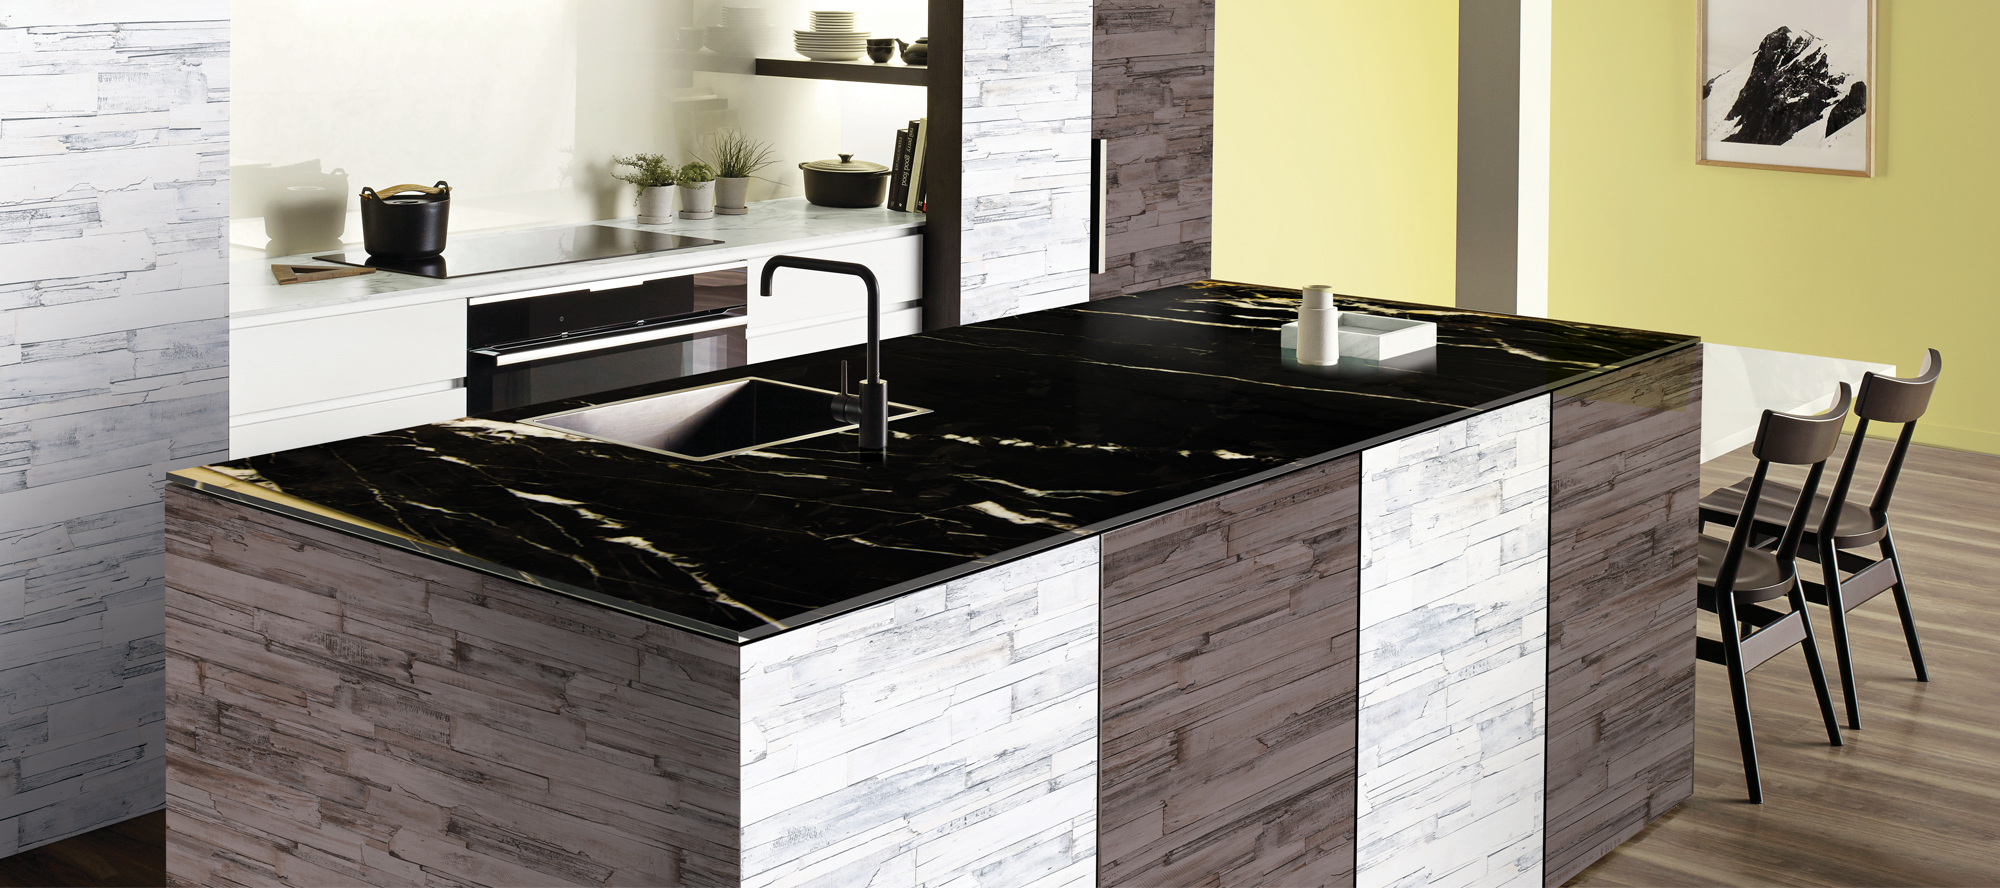 Era Laminates Collection In Digital Lminates For Kitchen-Sundek International